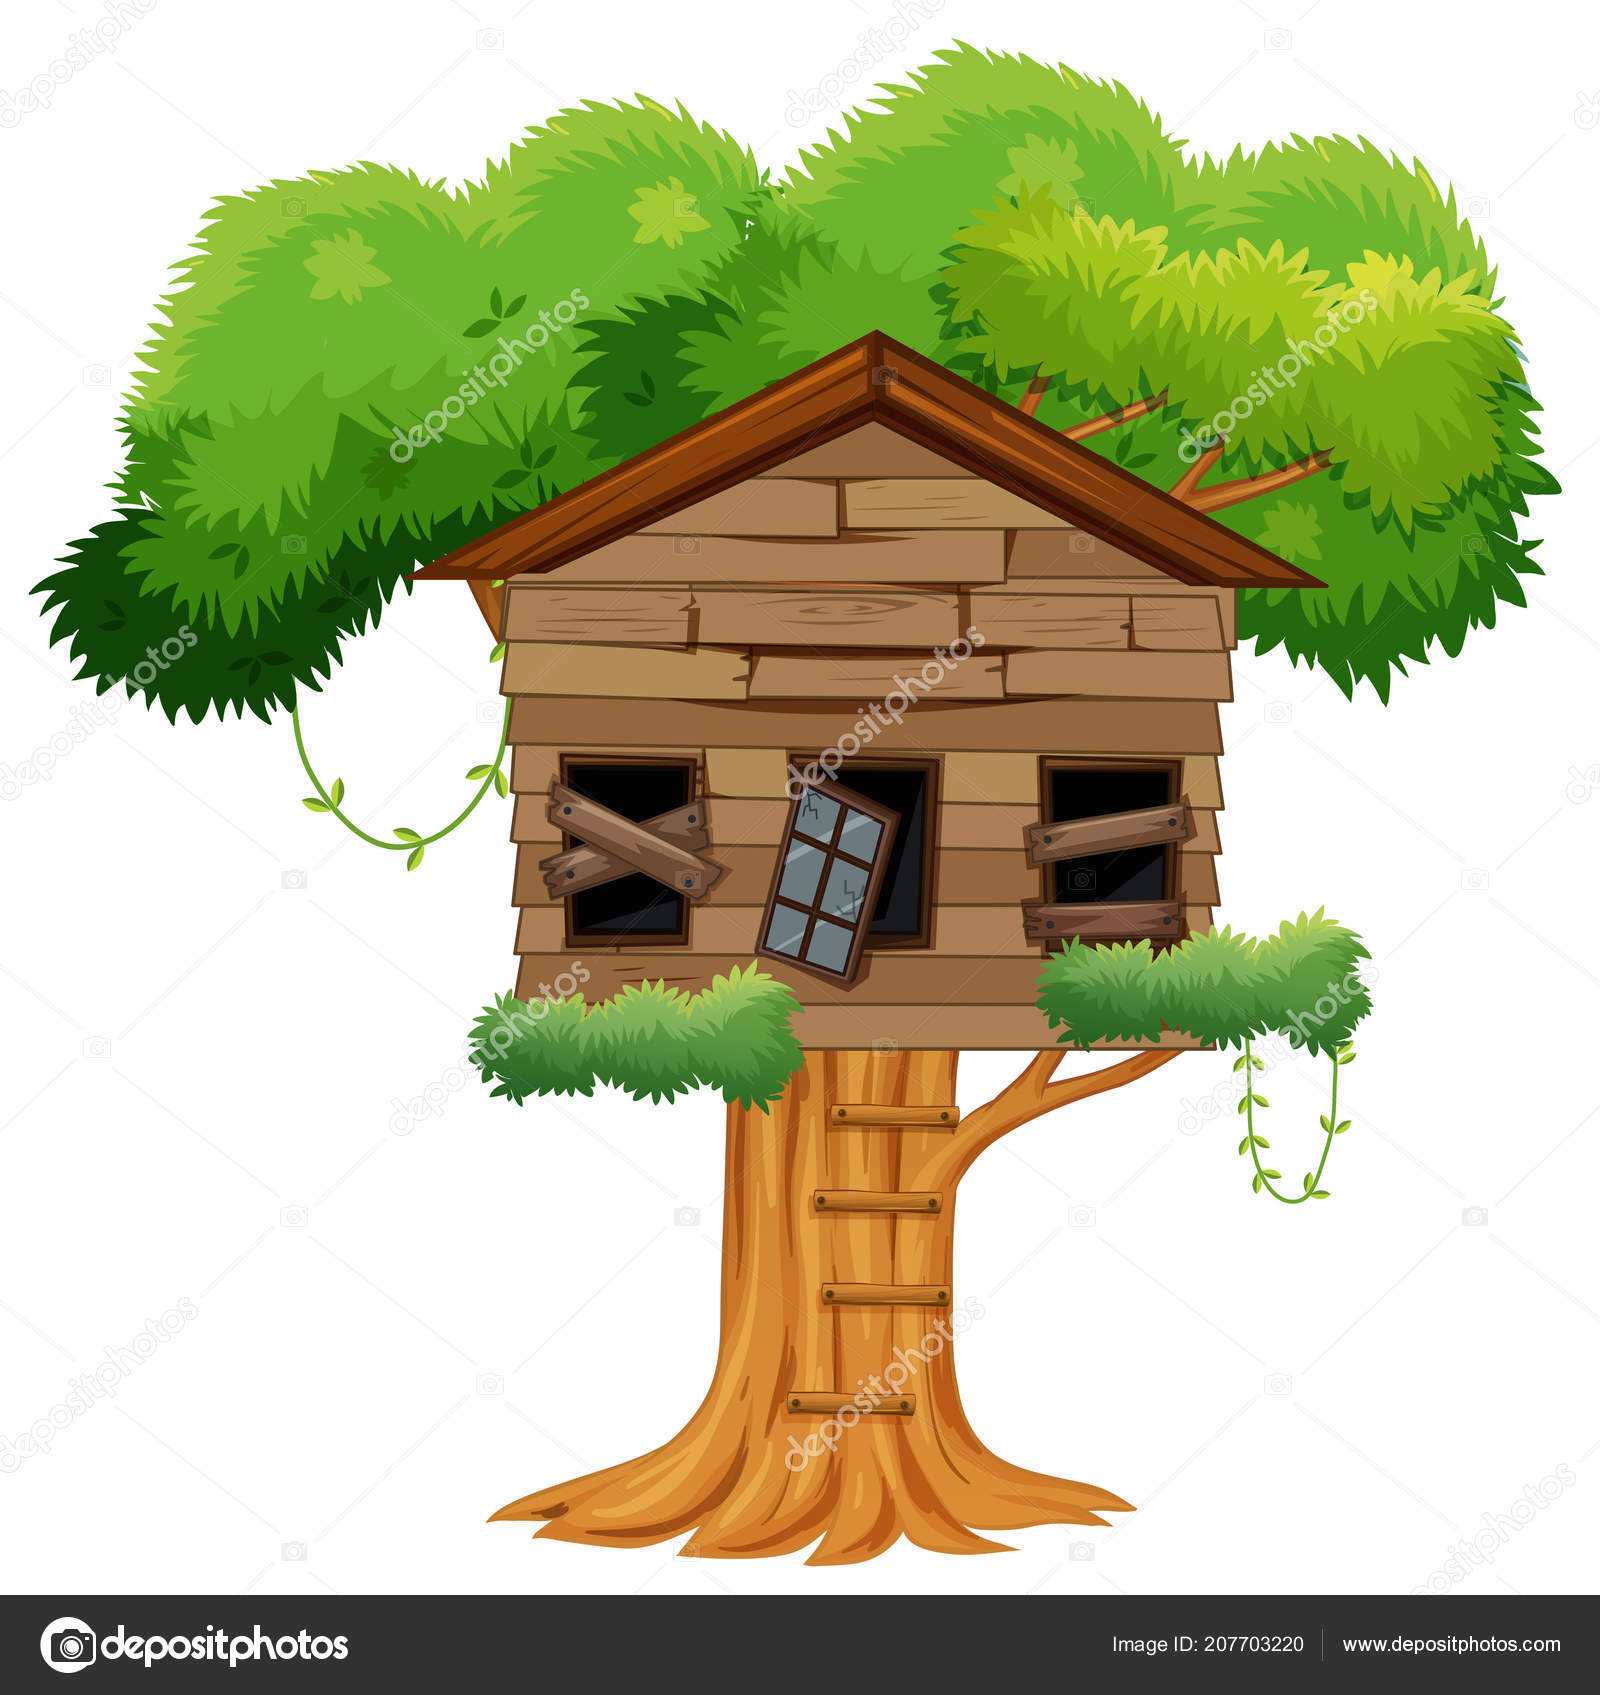 Clipart: broken tree house.